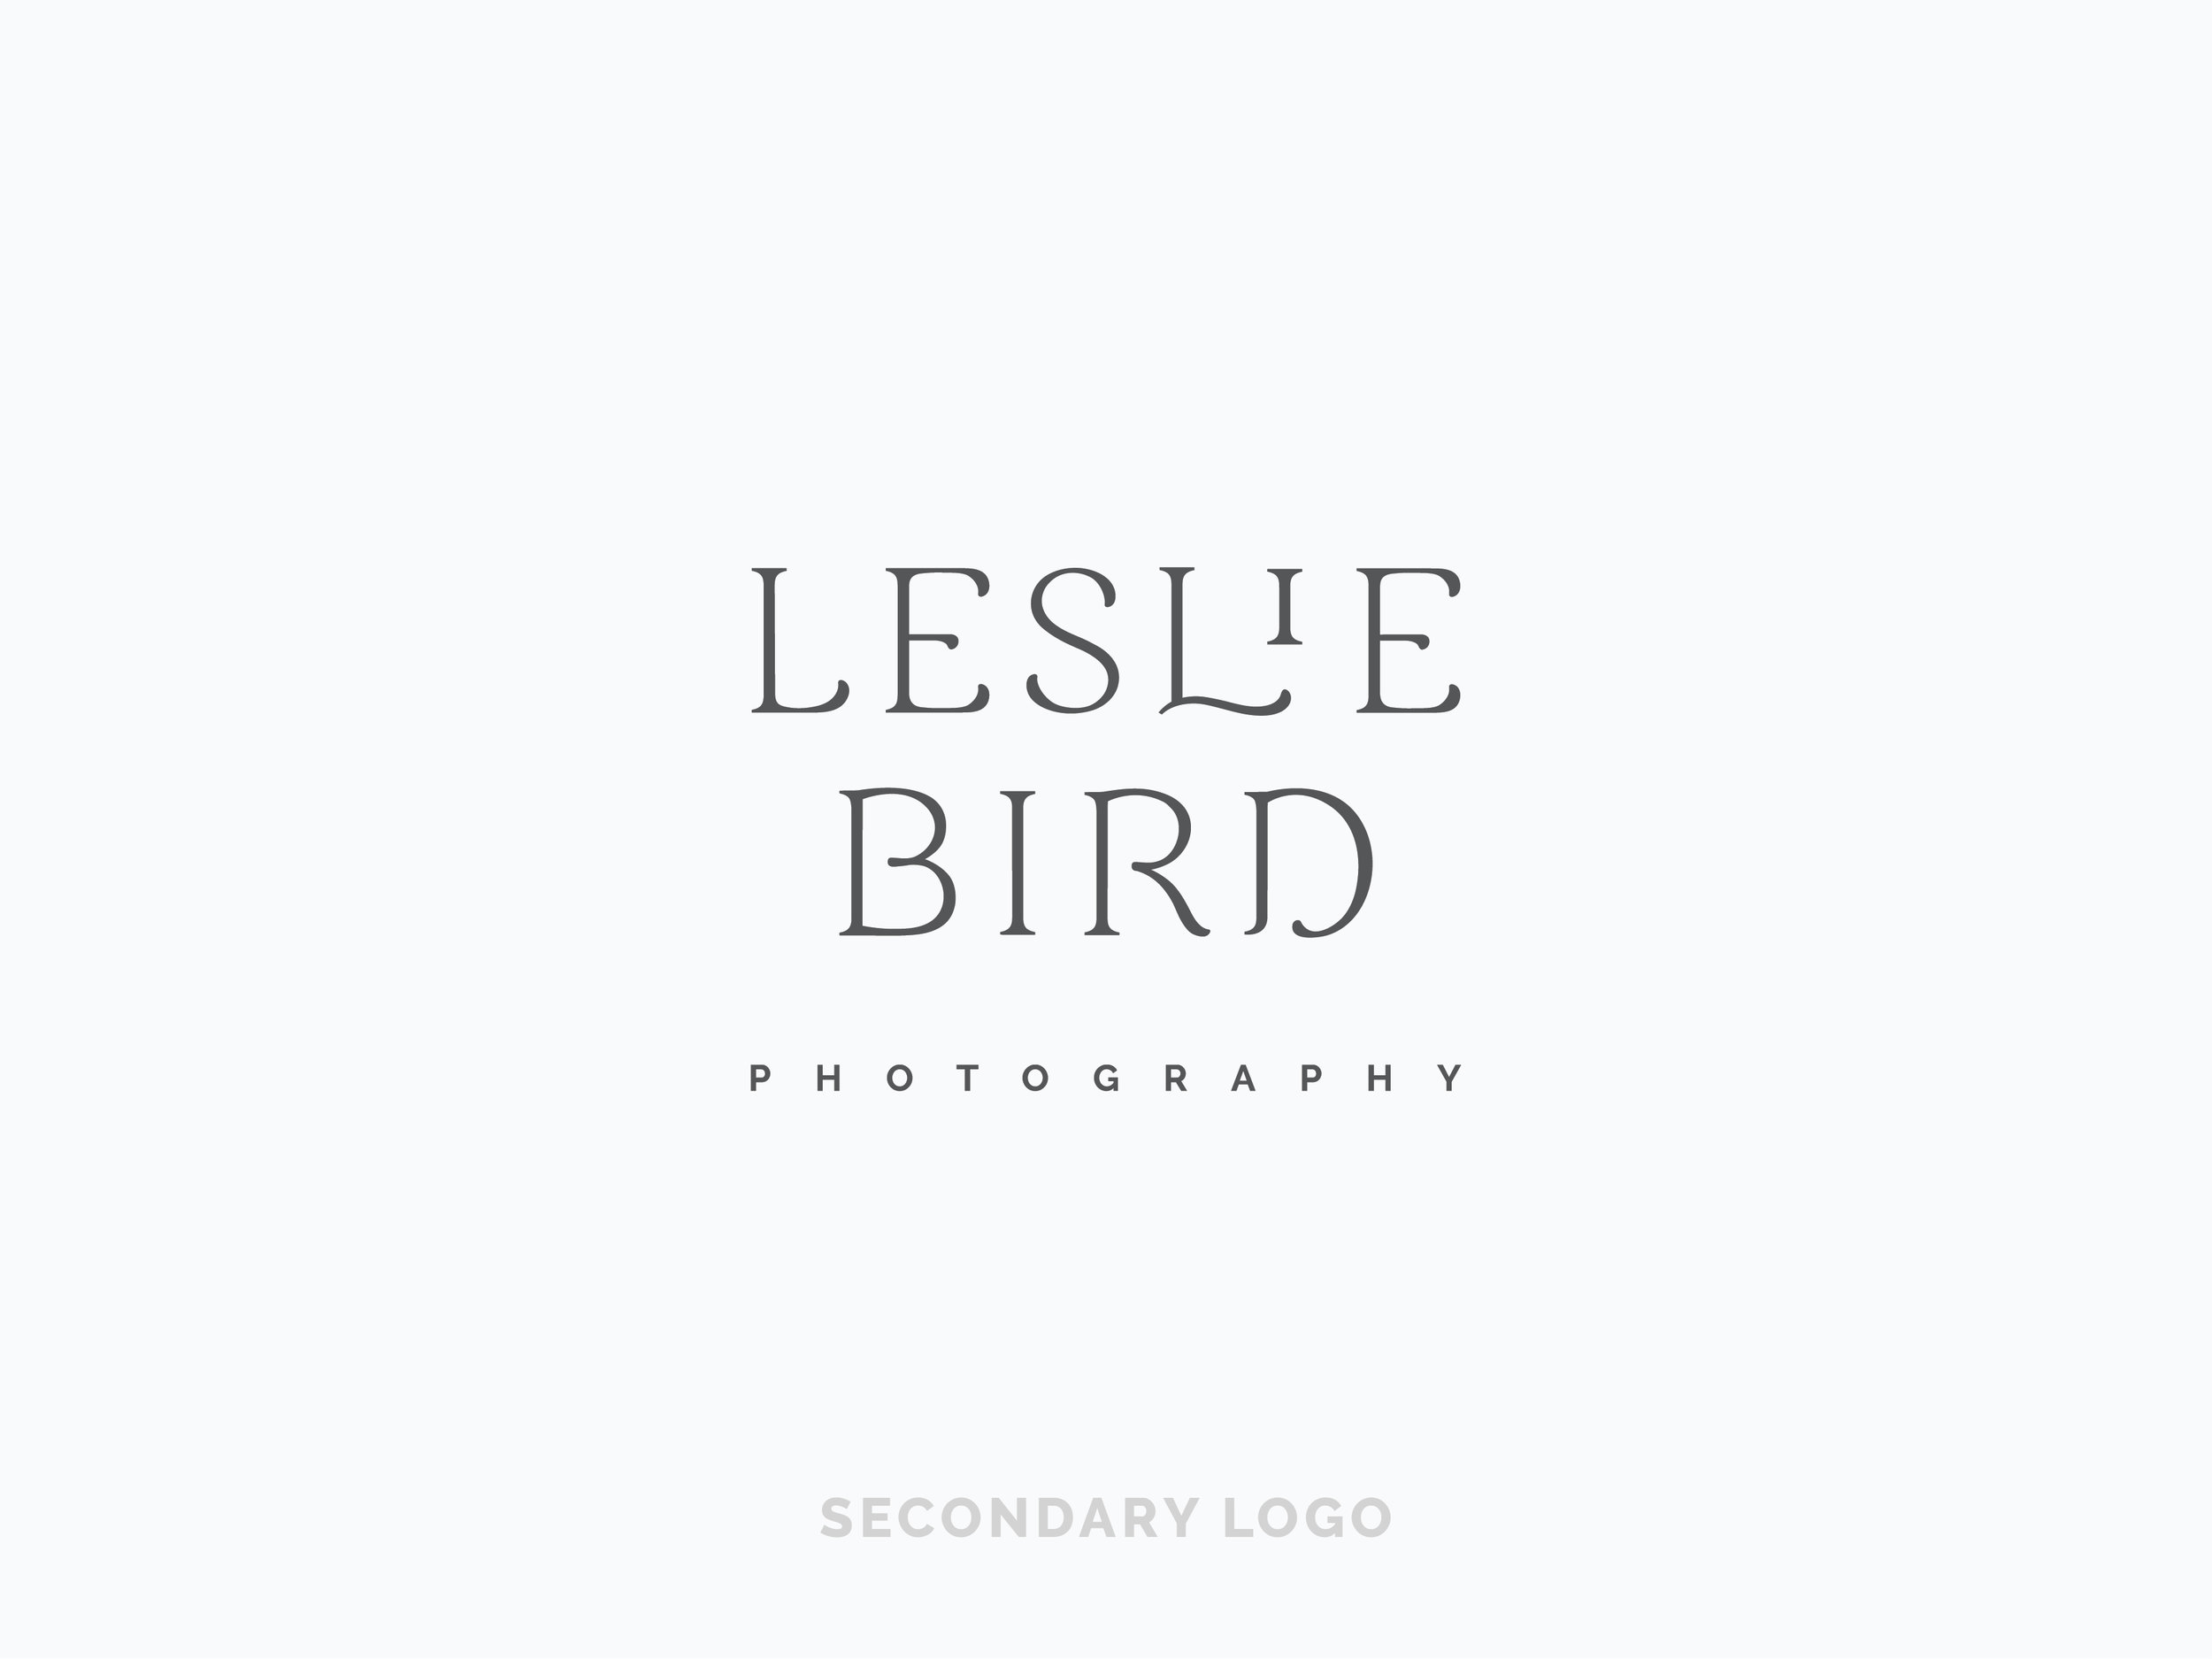 leslie bird photography 5.jpg